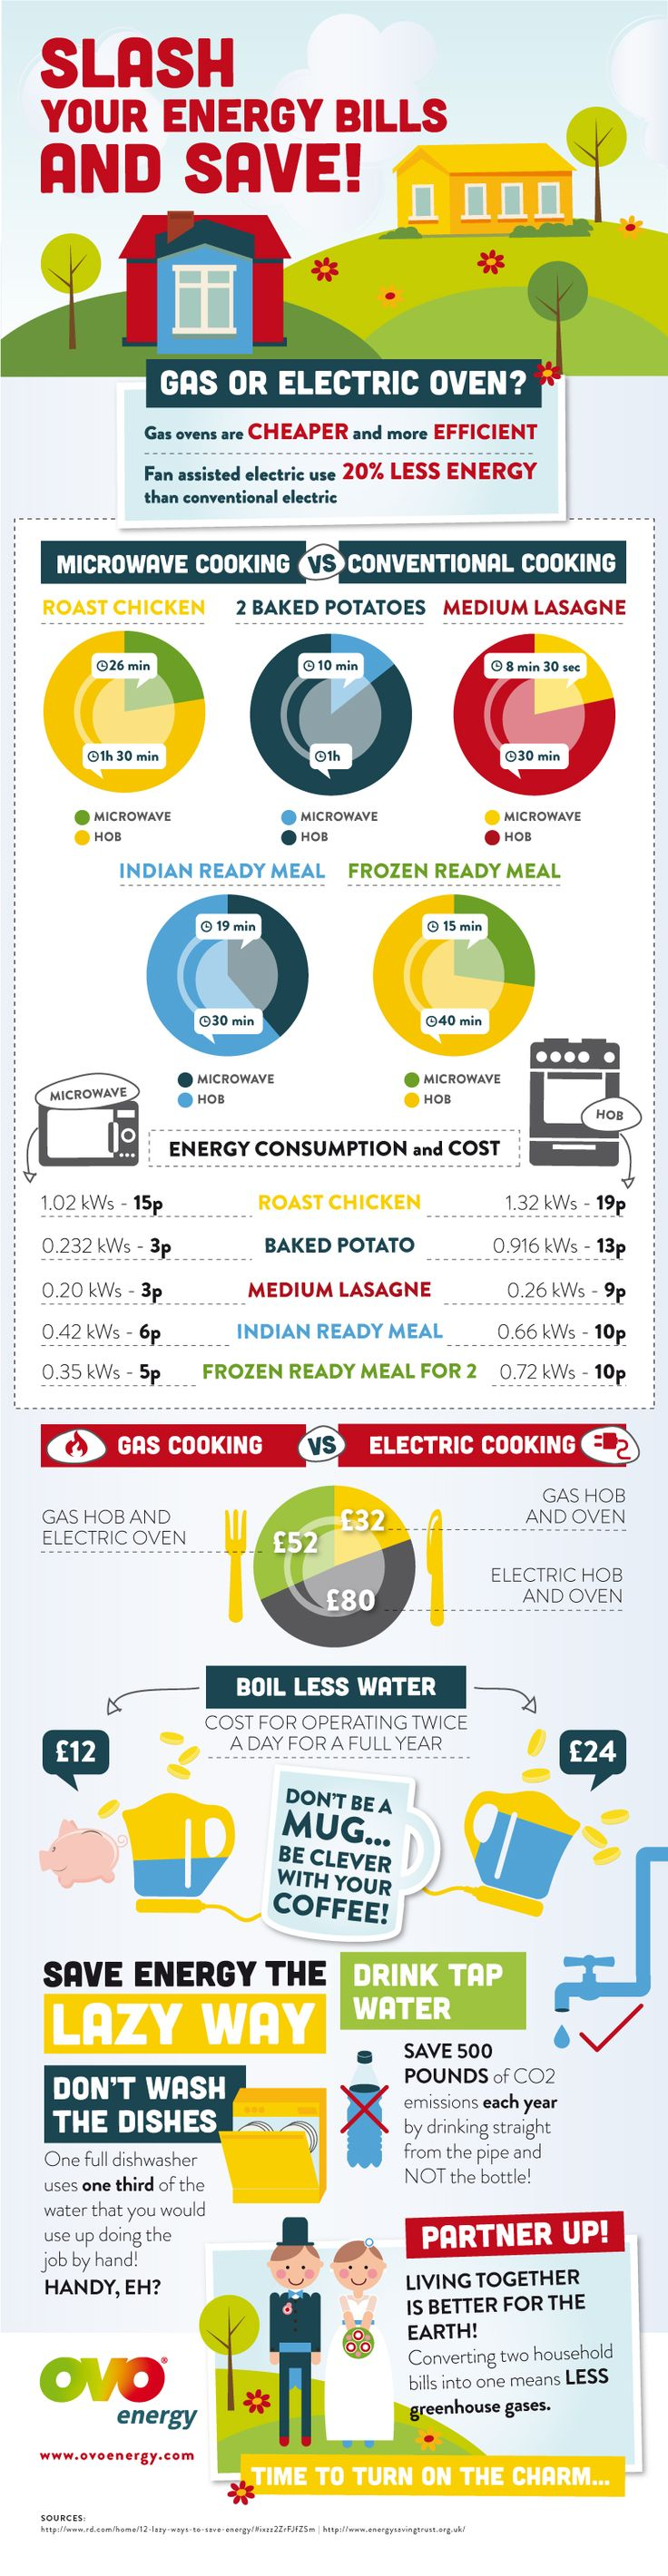 Slash Your Energy Bills and Save! Great infographic!